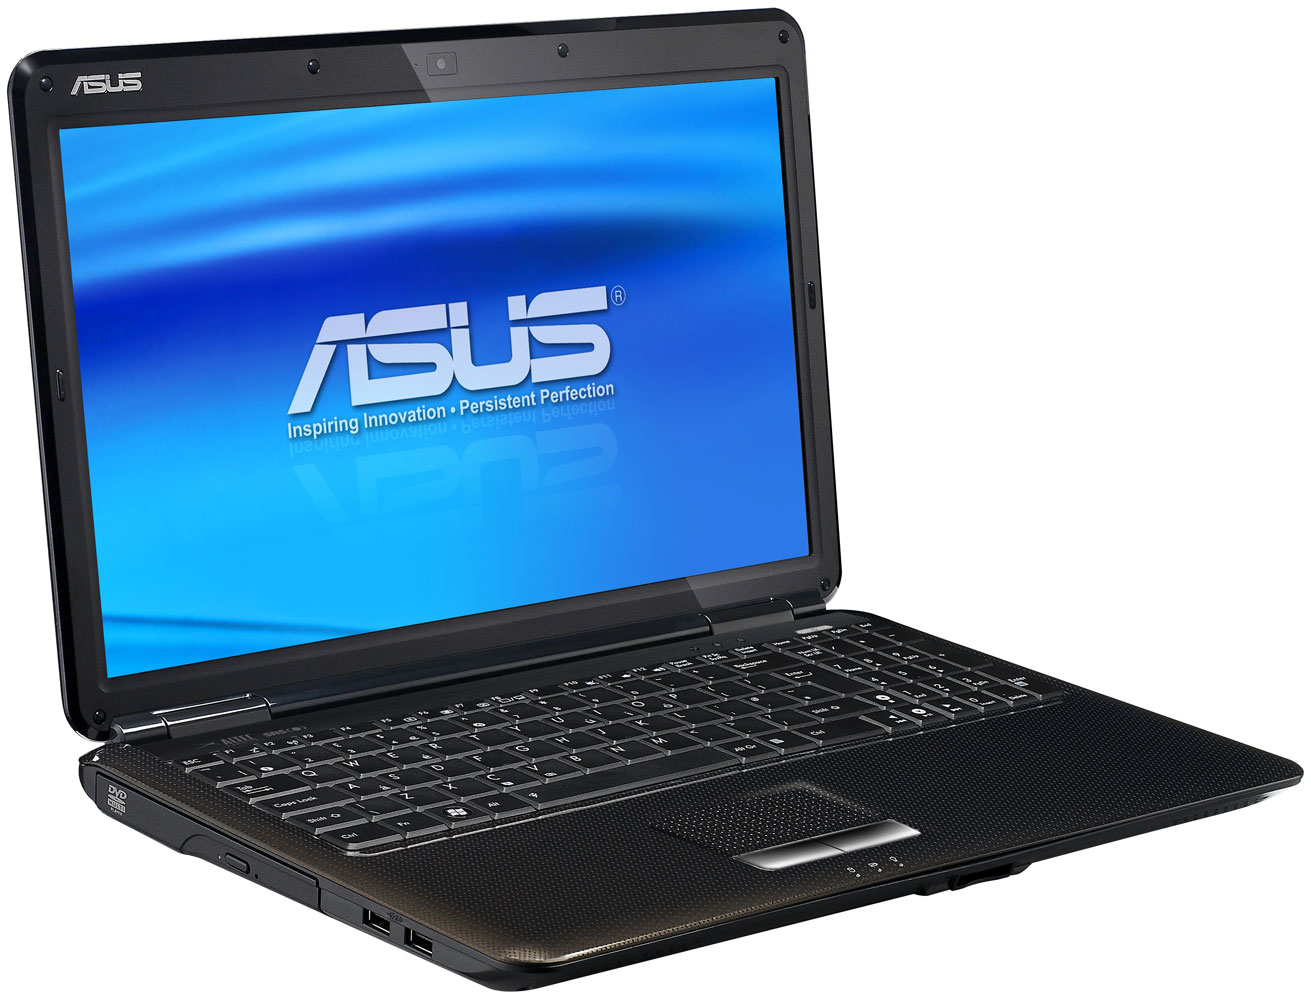 ASUS K40AB NOTEBOOK ATK GENERIC WINDOWS 7 64BIT DRIVER DOWNLOAD